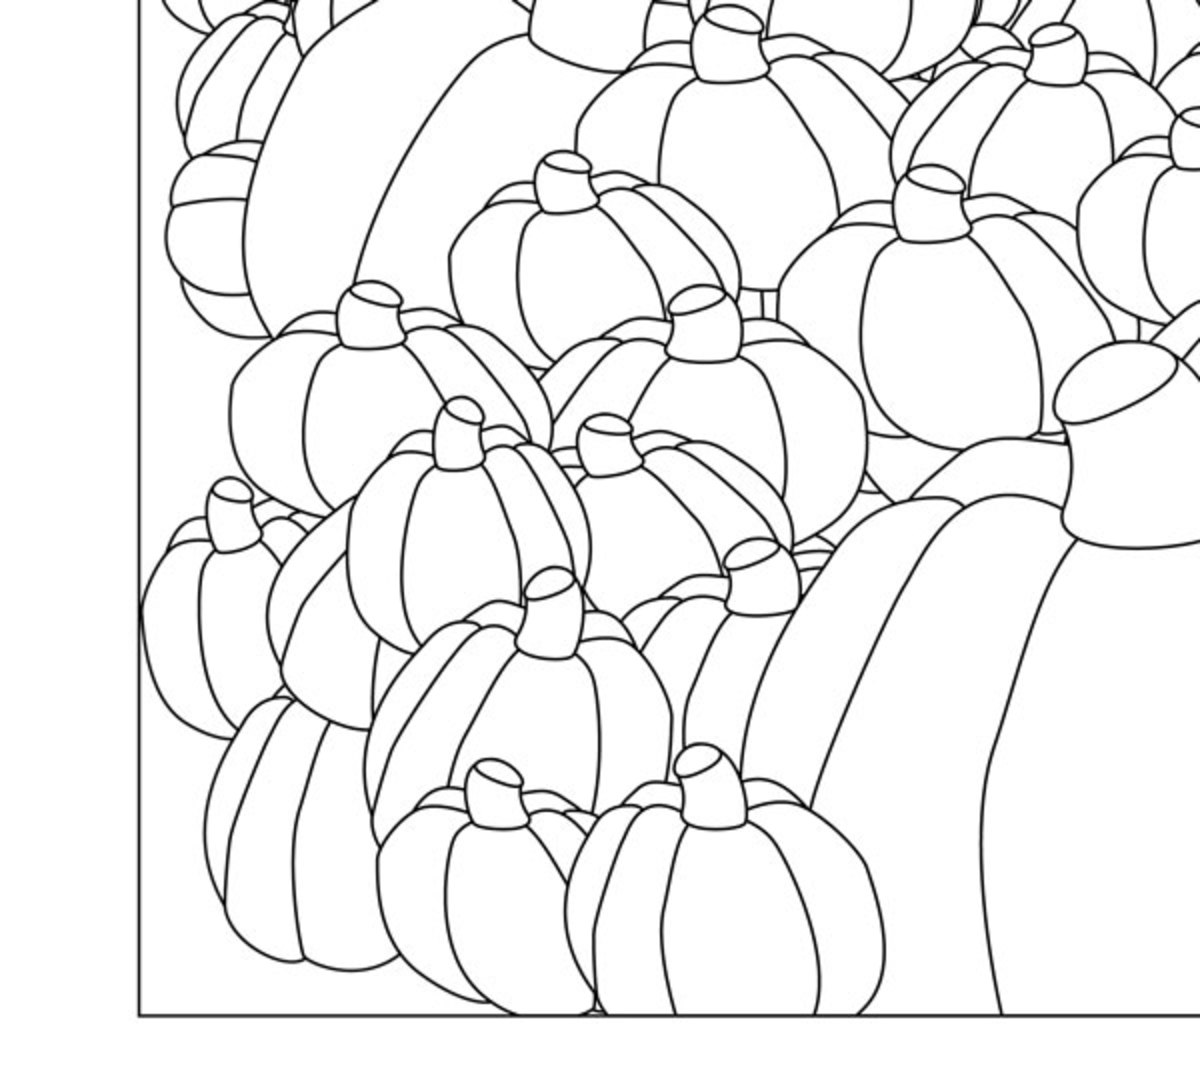 Plenty of Pumpkins Adult Coloring Poster